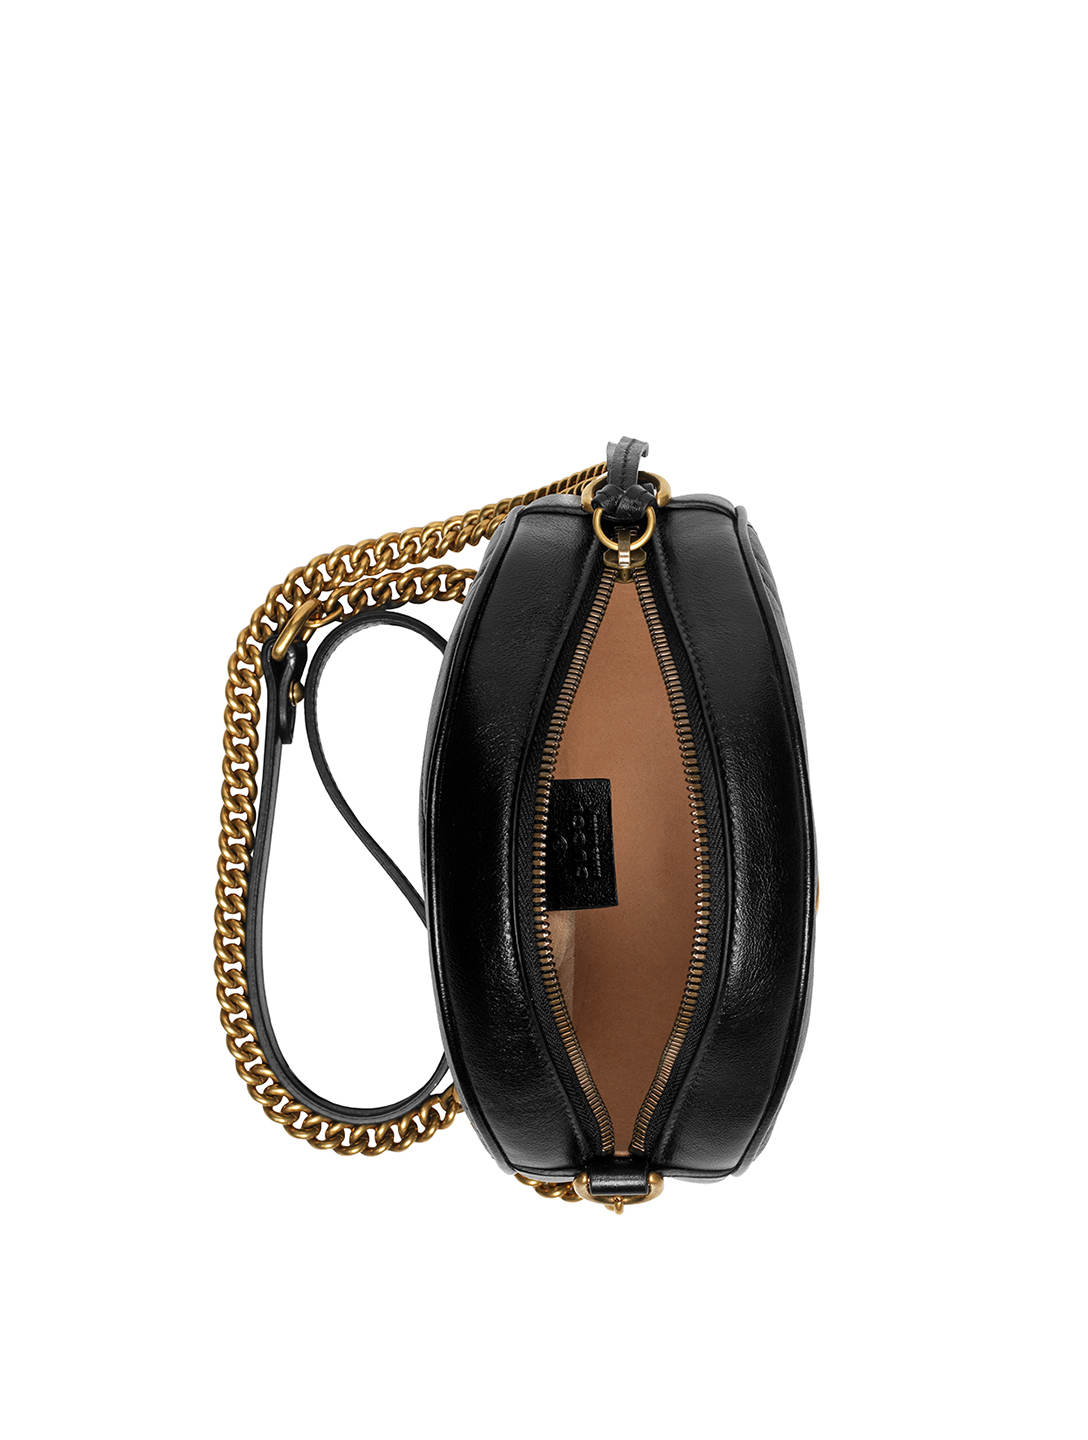 GUCCI GG Marmont Leather Circle Bag Women's Black